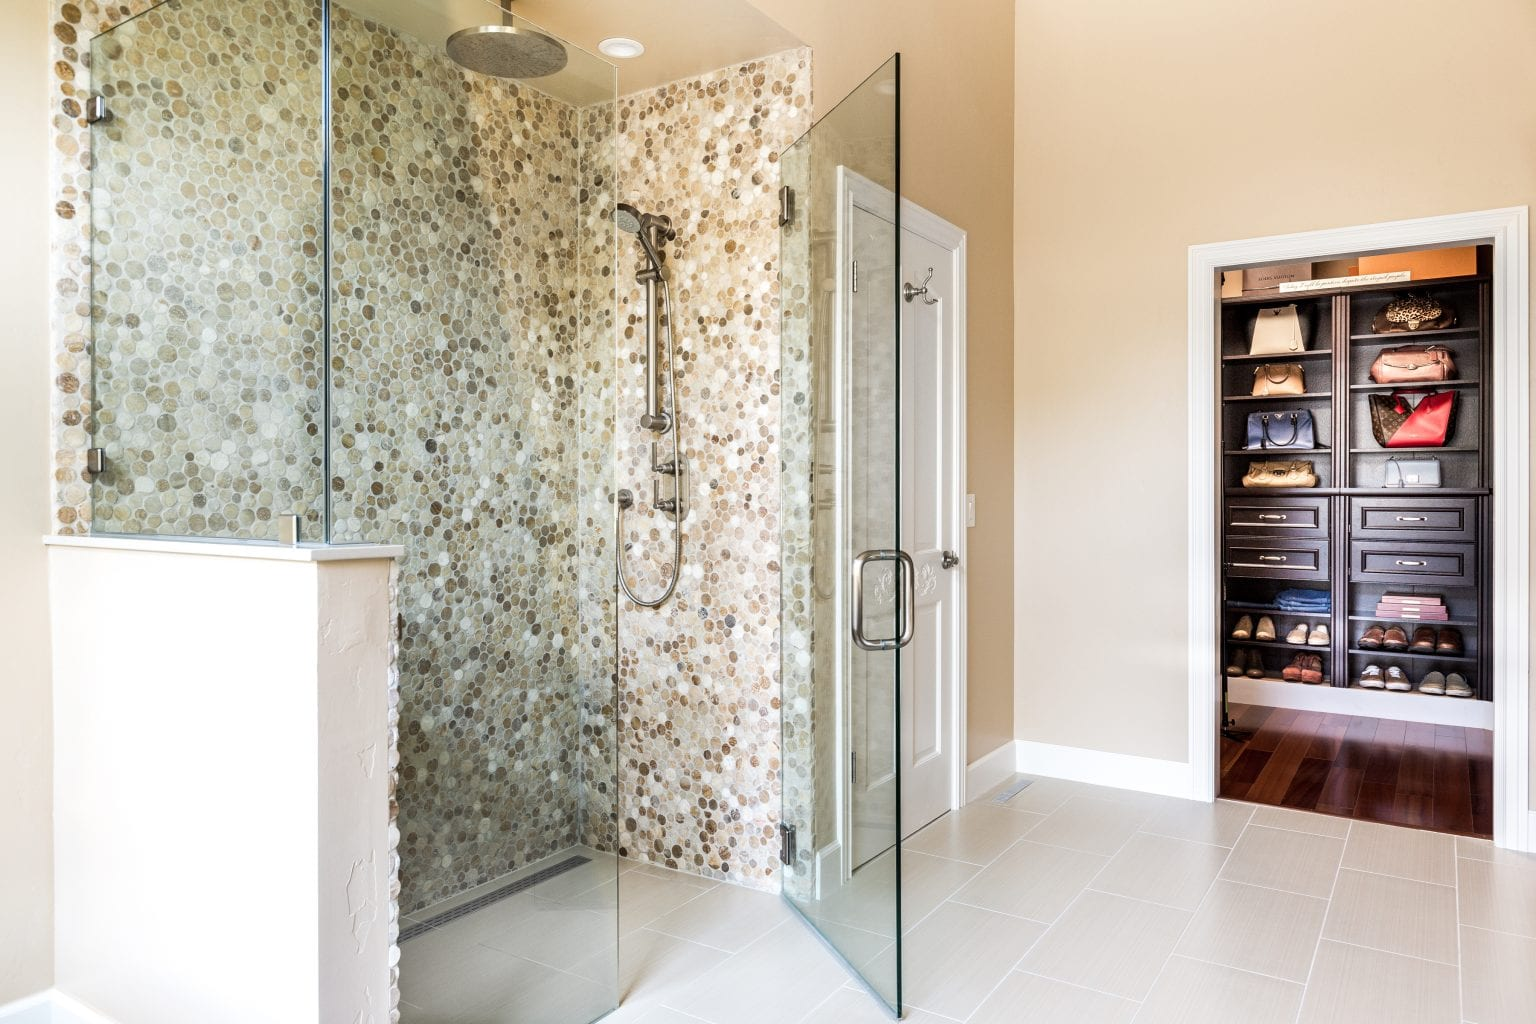 Shower with large glass doors